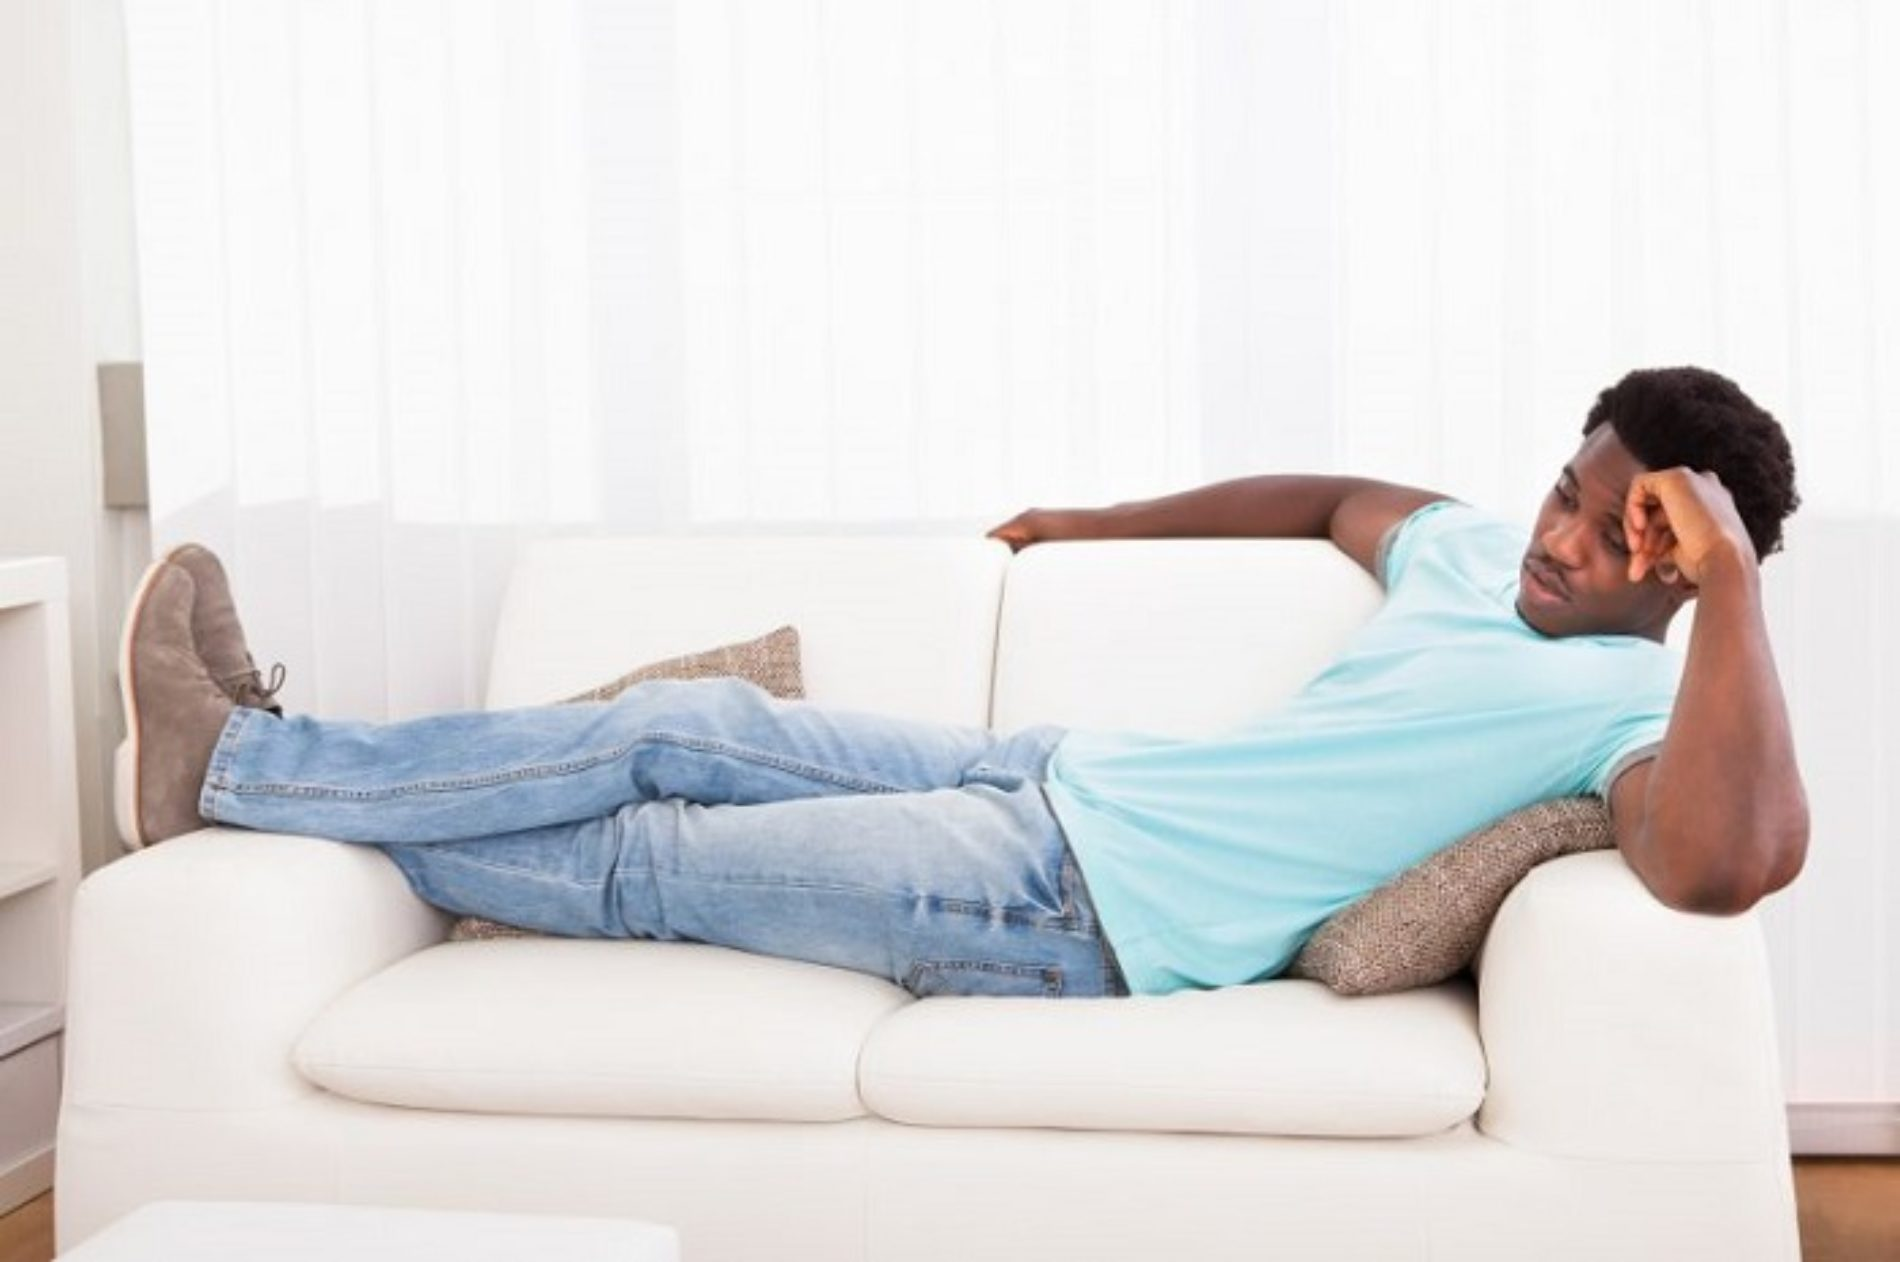 5 Tips For the Single Gay Guy